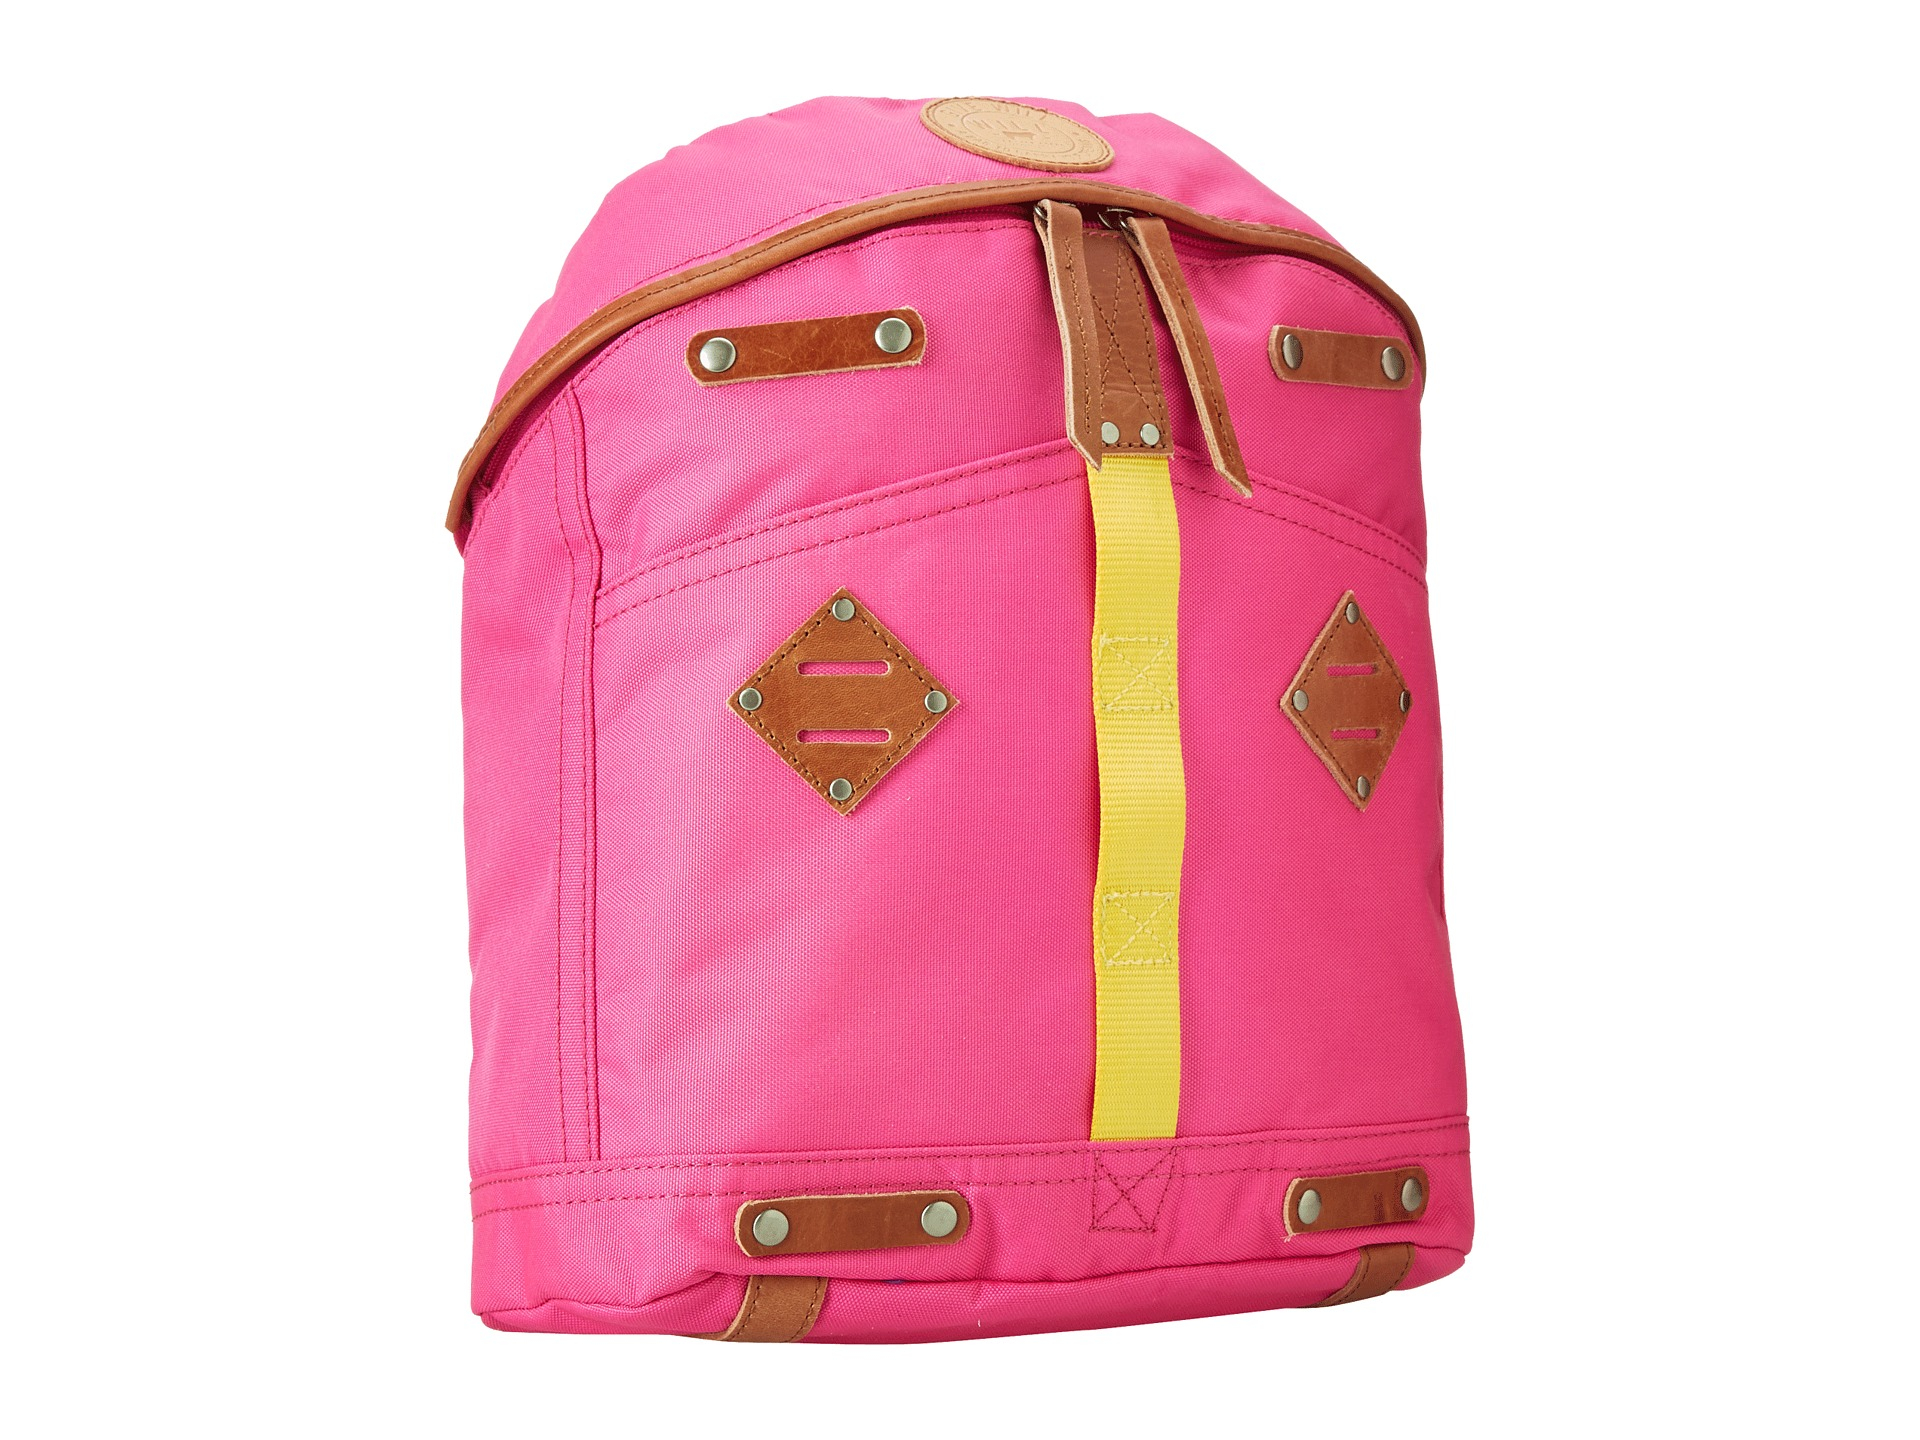 Lyst - Will Leather Goods Give Will Small Backpack in Pink dd889ffc835d